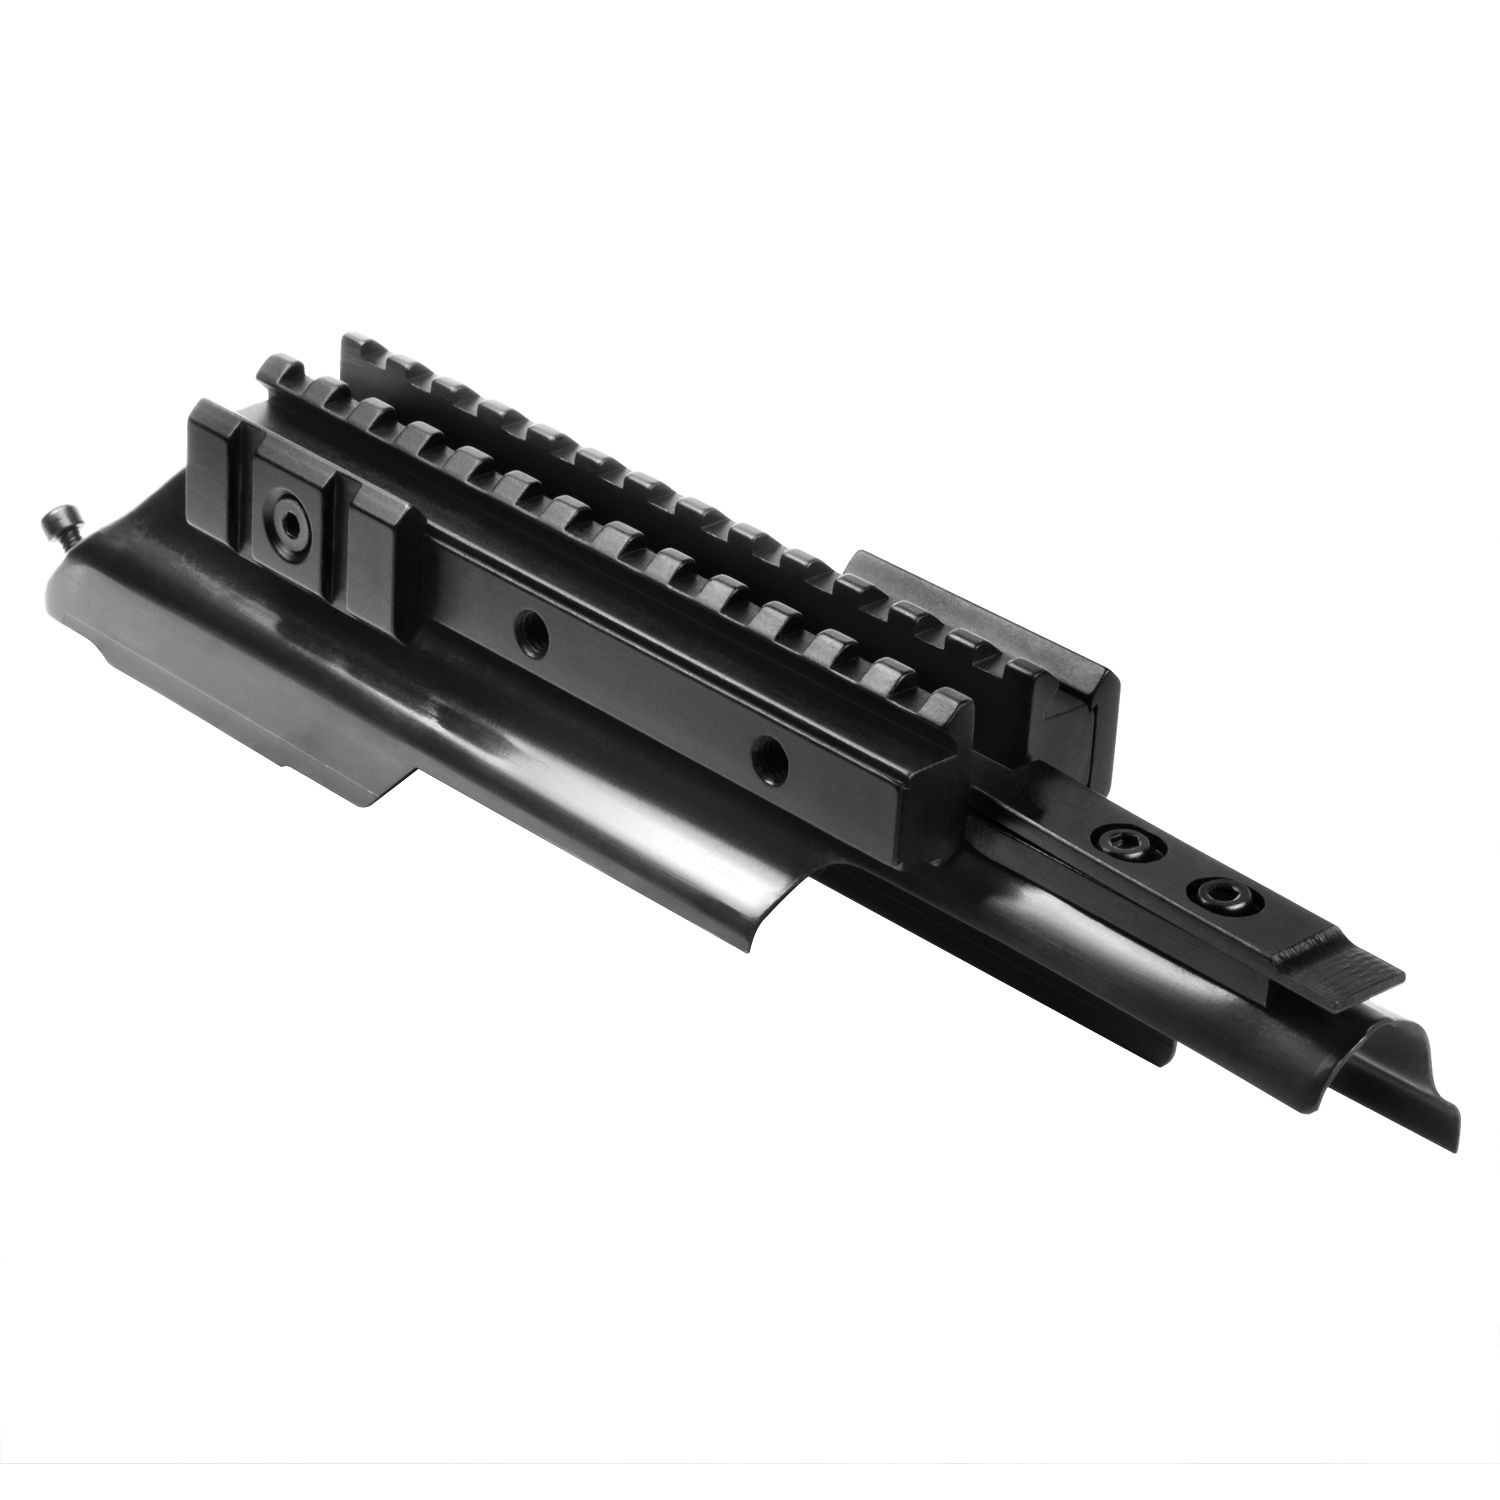 Ncstar AK-47 Tri-Rail Weaver Scope Mount And Receiver Cover